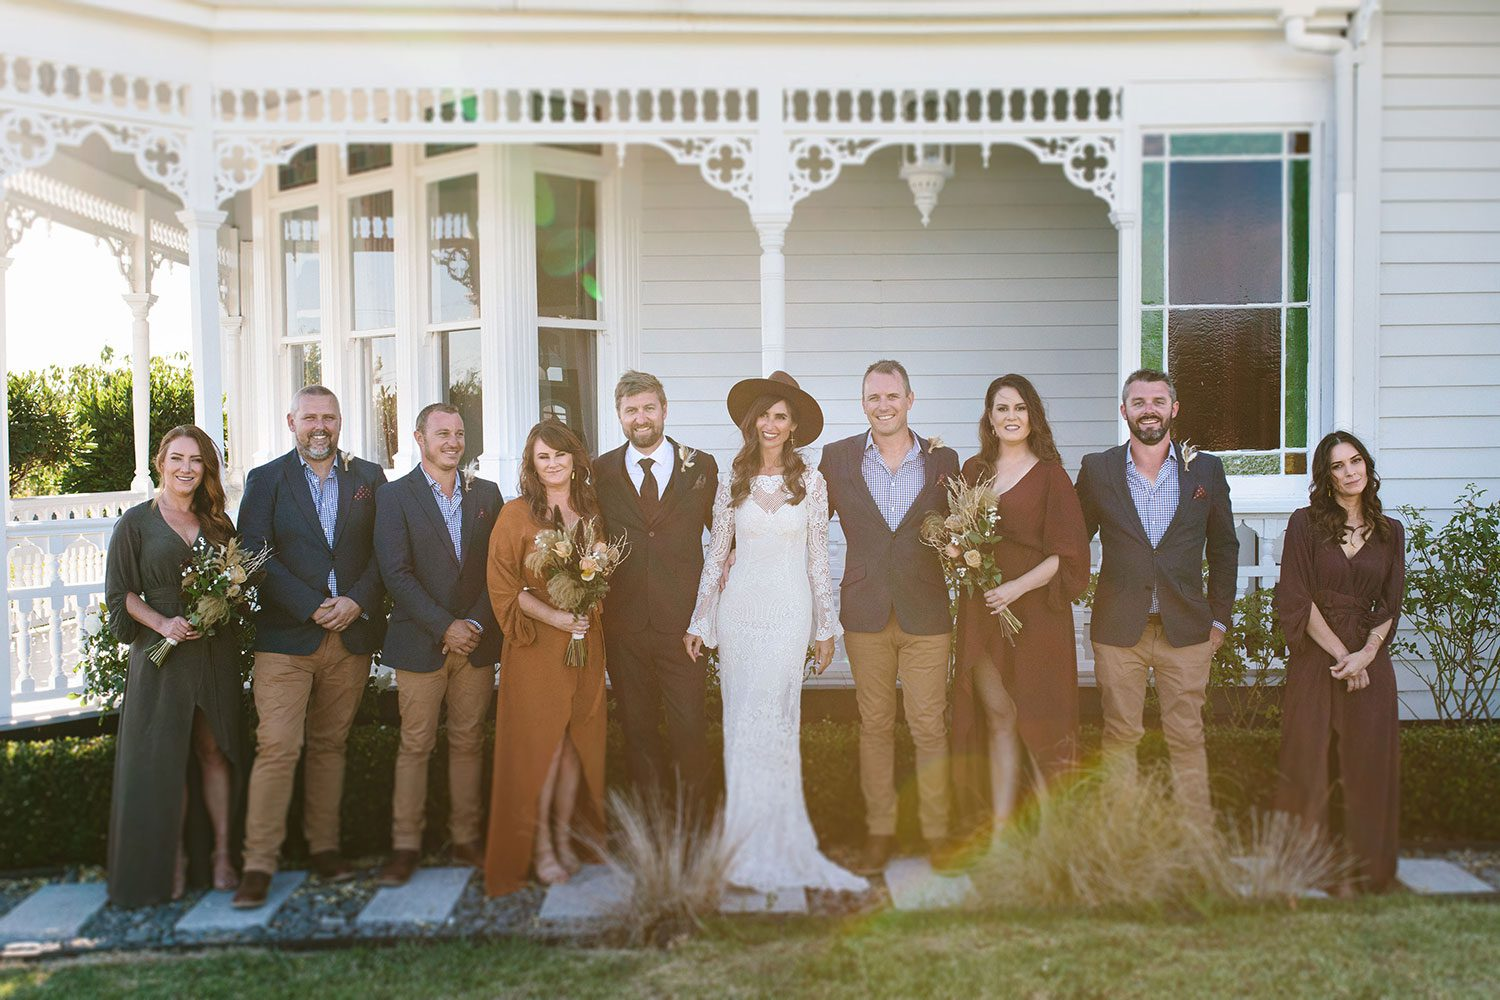 Bride wearing Sabine wedding gown by Auckland wedding dress maker Vinka Design, with French crochet lace detail and long sleeves - with bridal party